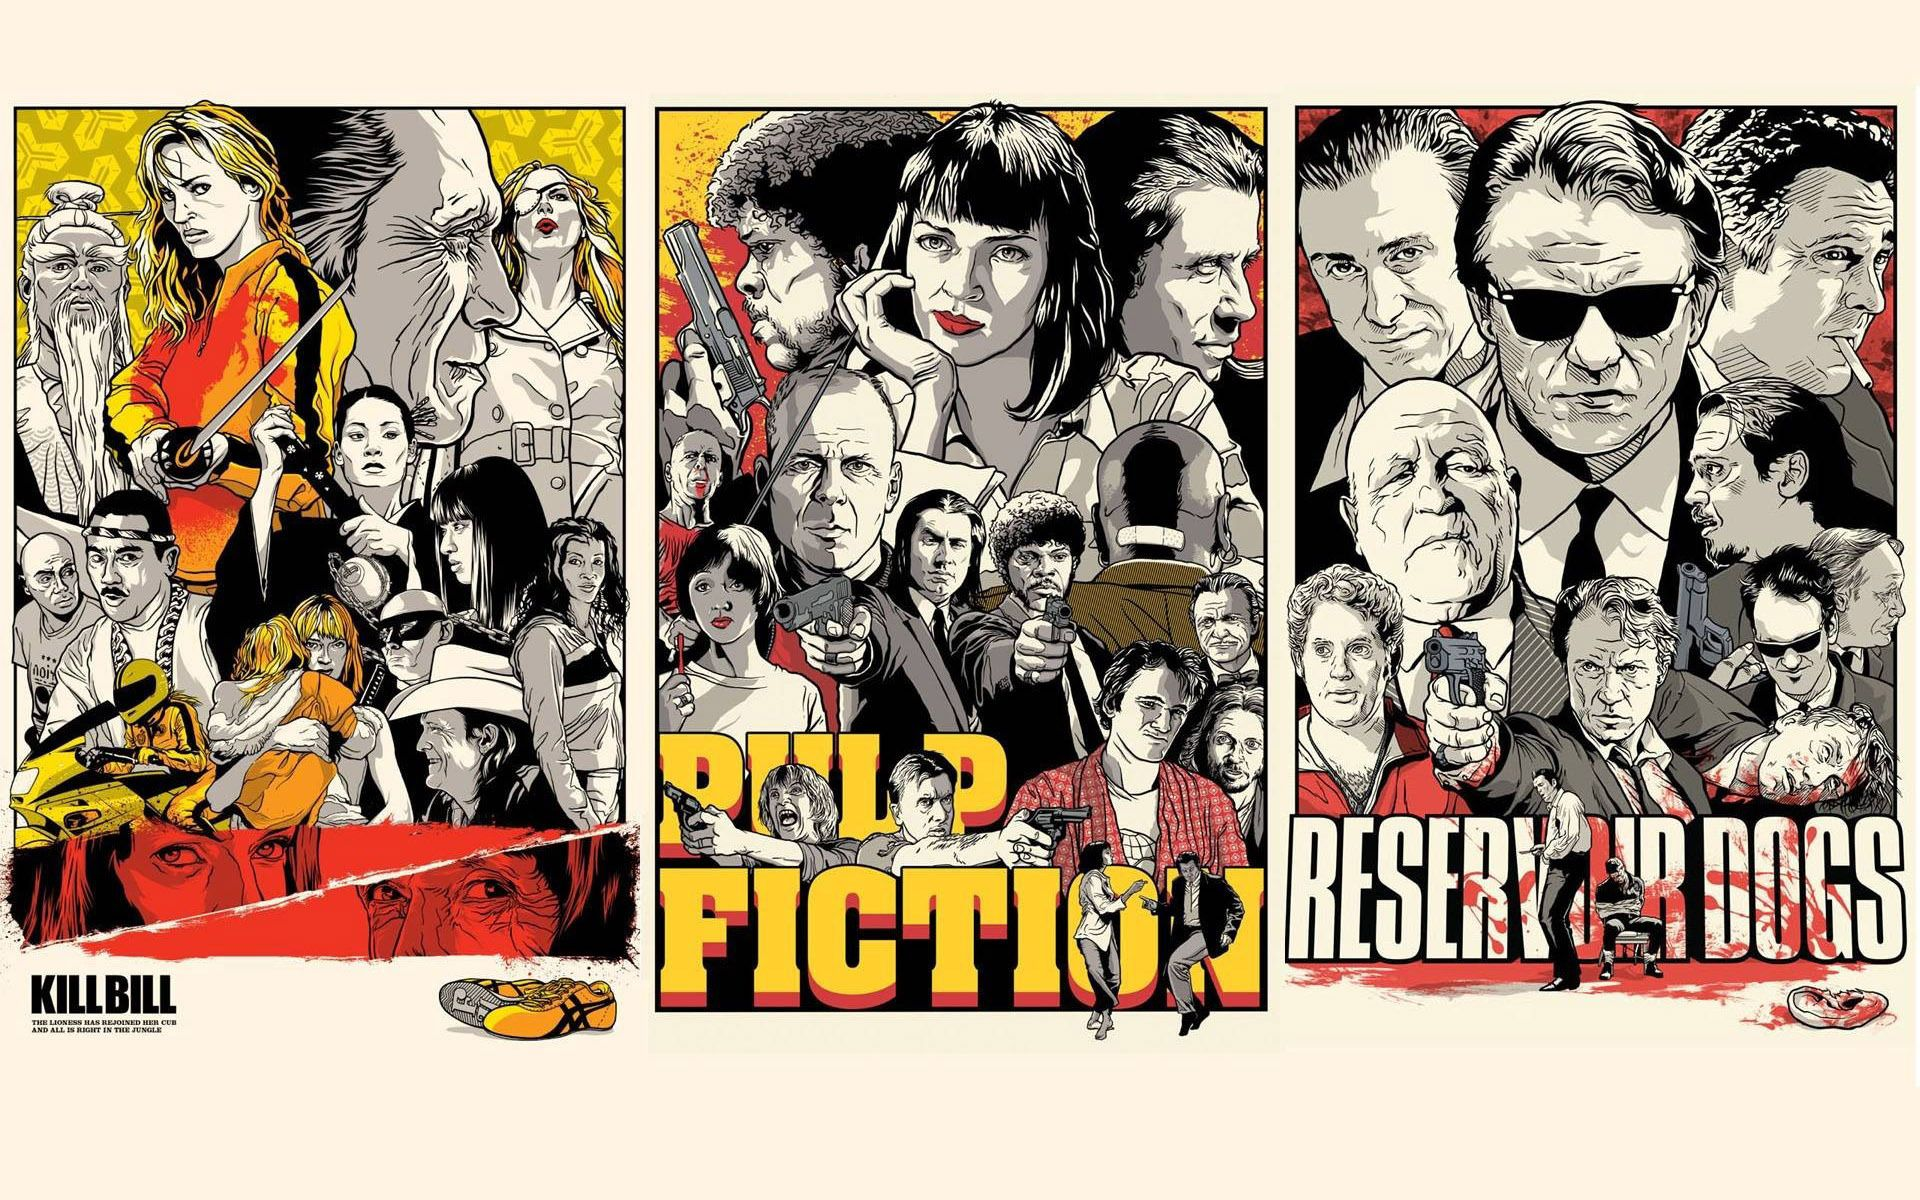 Quentin Tarantino Movies Artistic Hd Wallpaper 1920x1200